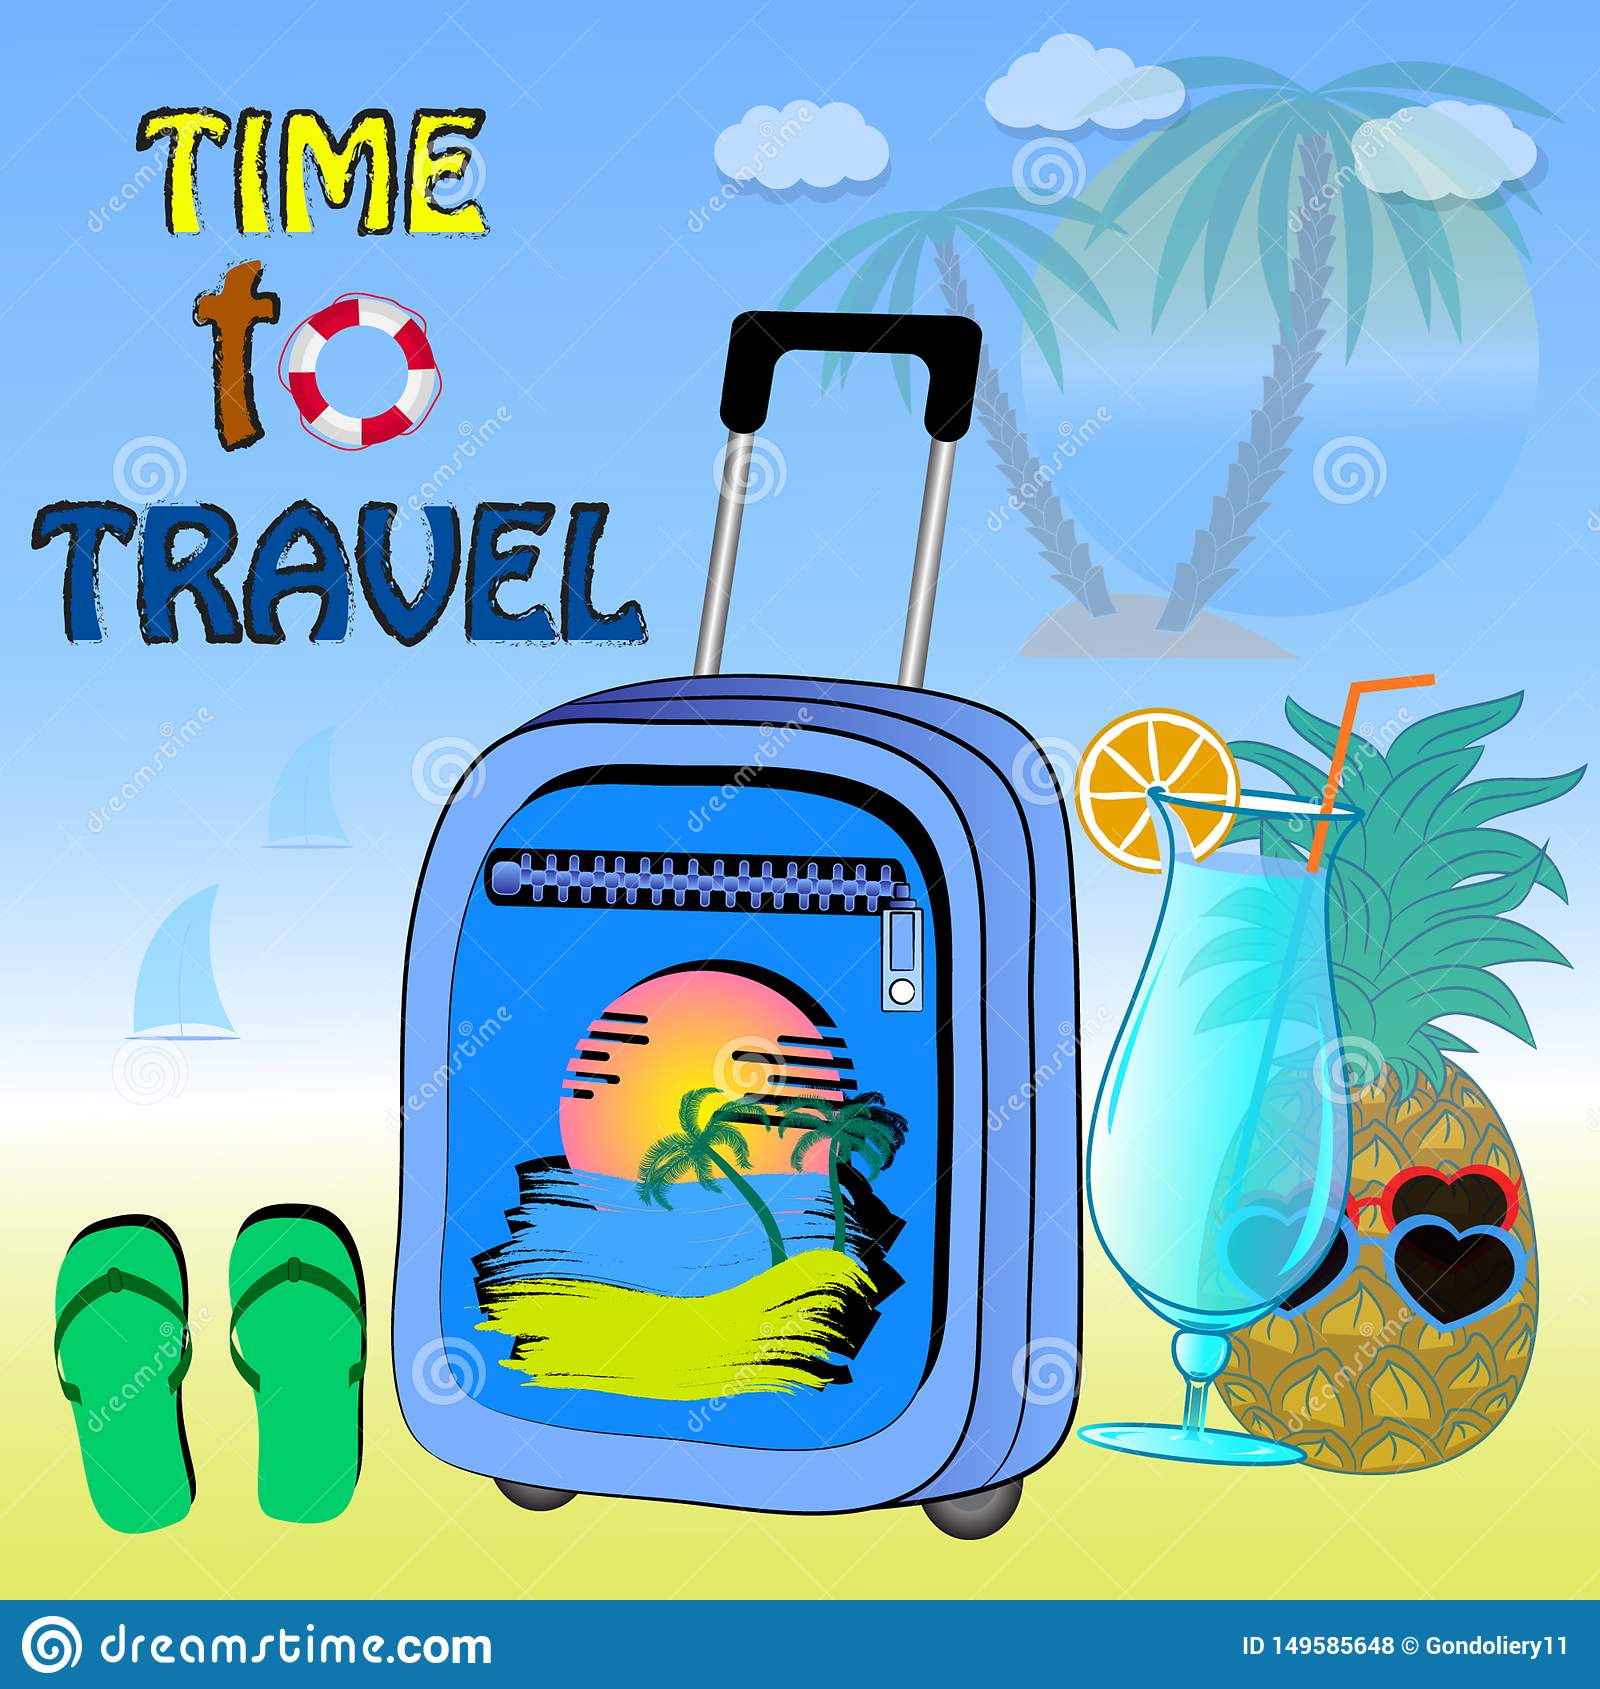 Poster time to travel vector illustration.